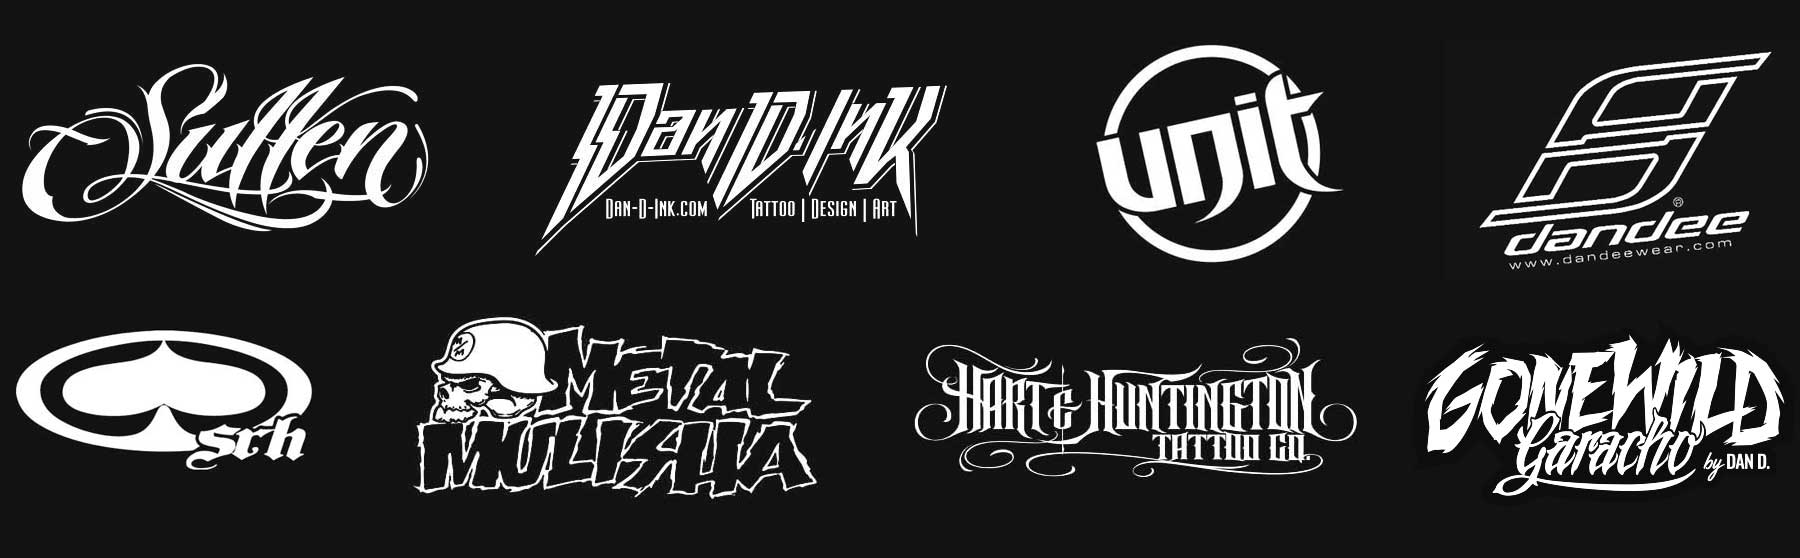 Sullen, Dan D. Ink, UNIT, Dandee, SRH, Metal Mulisha, Hurt & Huntington